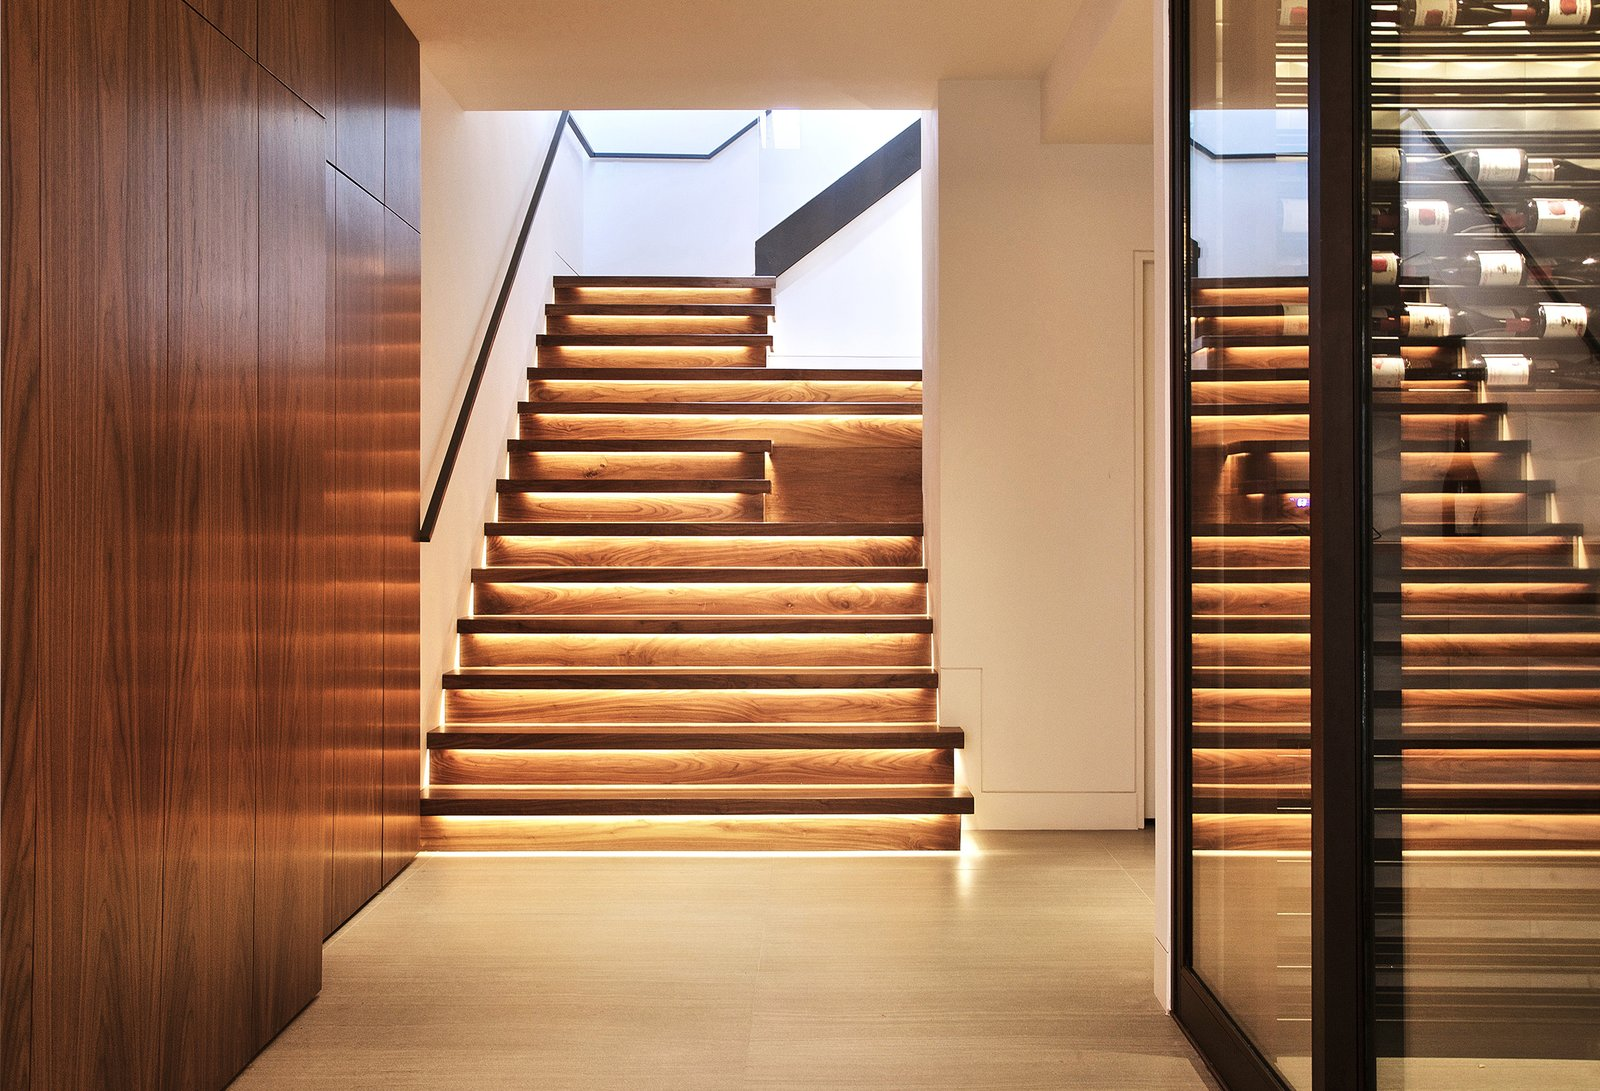 Staircase, Wood Tread, and Wood Railing Cascading Walnut Stairs w/ LED lights  Lyon Residence by Diego Pacheco Design Practice